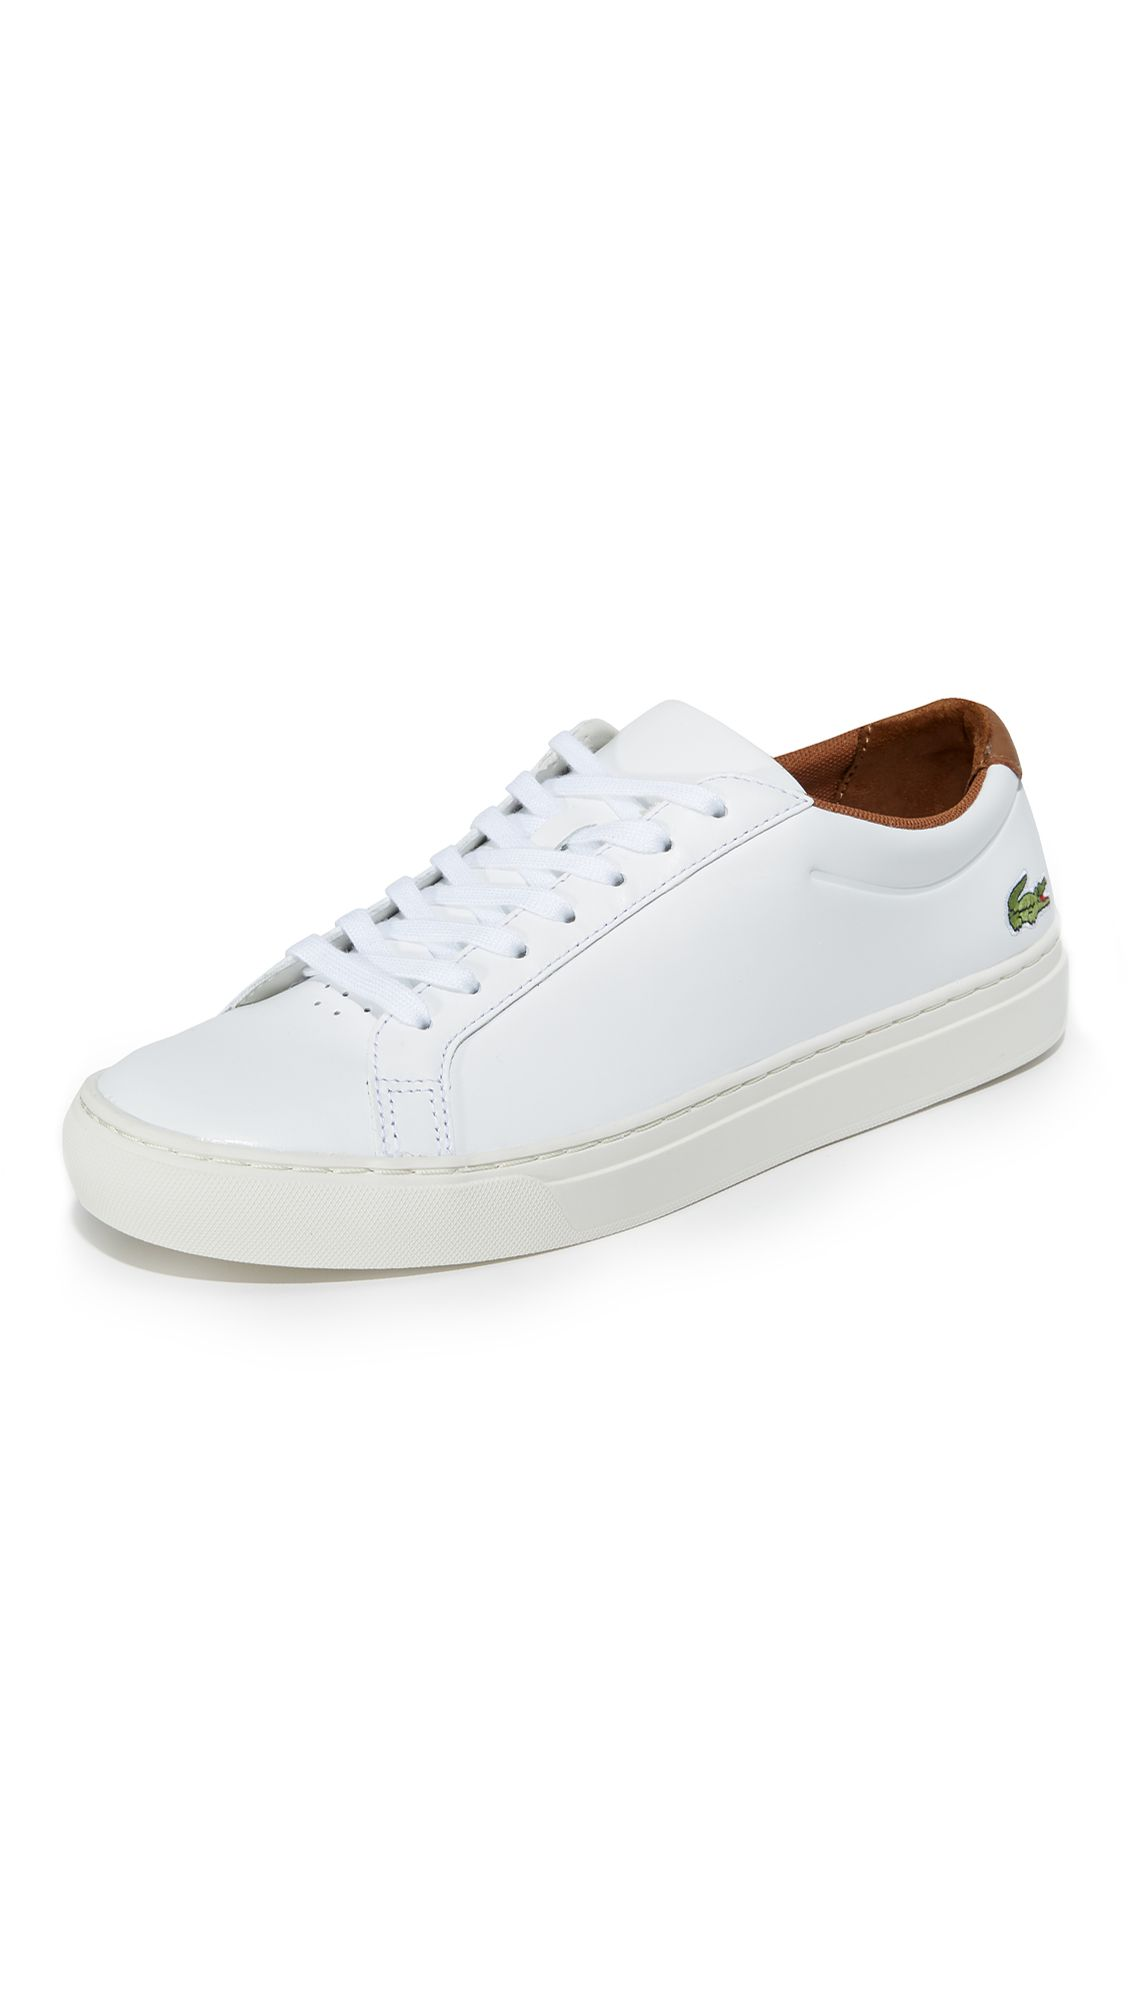 6cc1f52199f23 LACOSTE L. 12. 12. Sneakers.  lacoste  shoes  sneakers